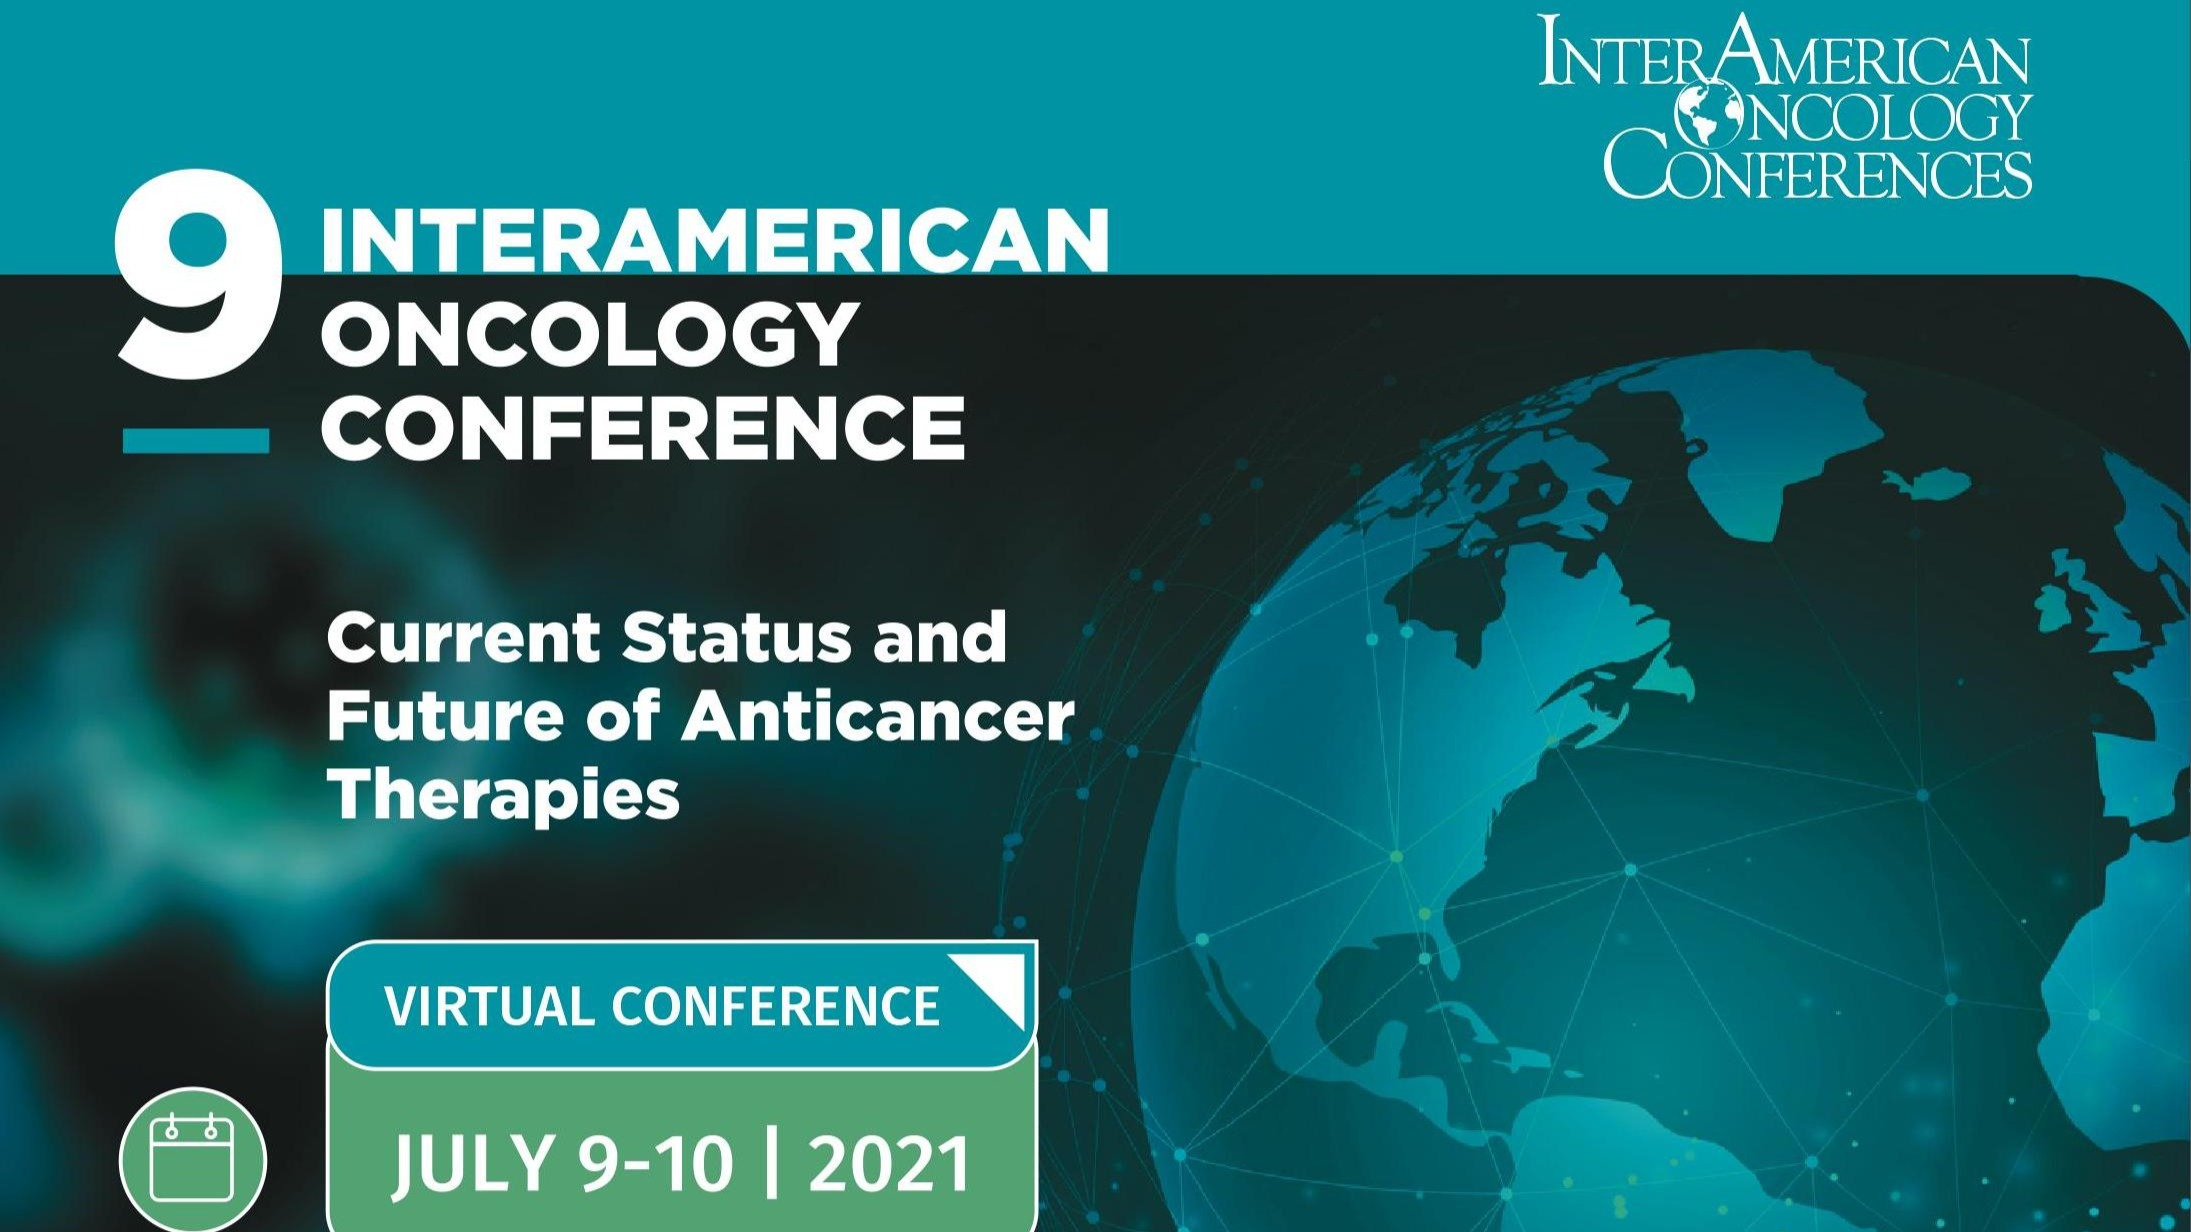 9th. InterAmerican Oncology Conference 'Current Status and Future of Anti-Cancer Therapies'